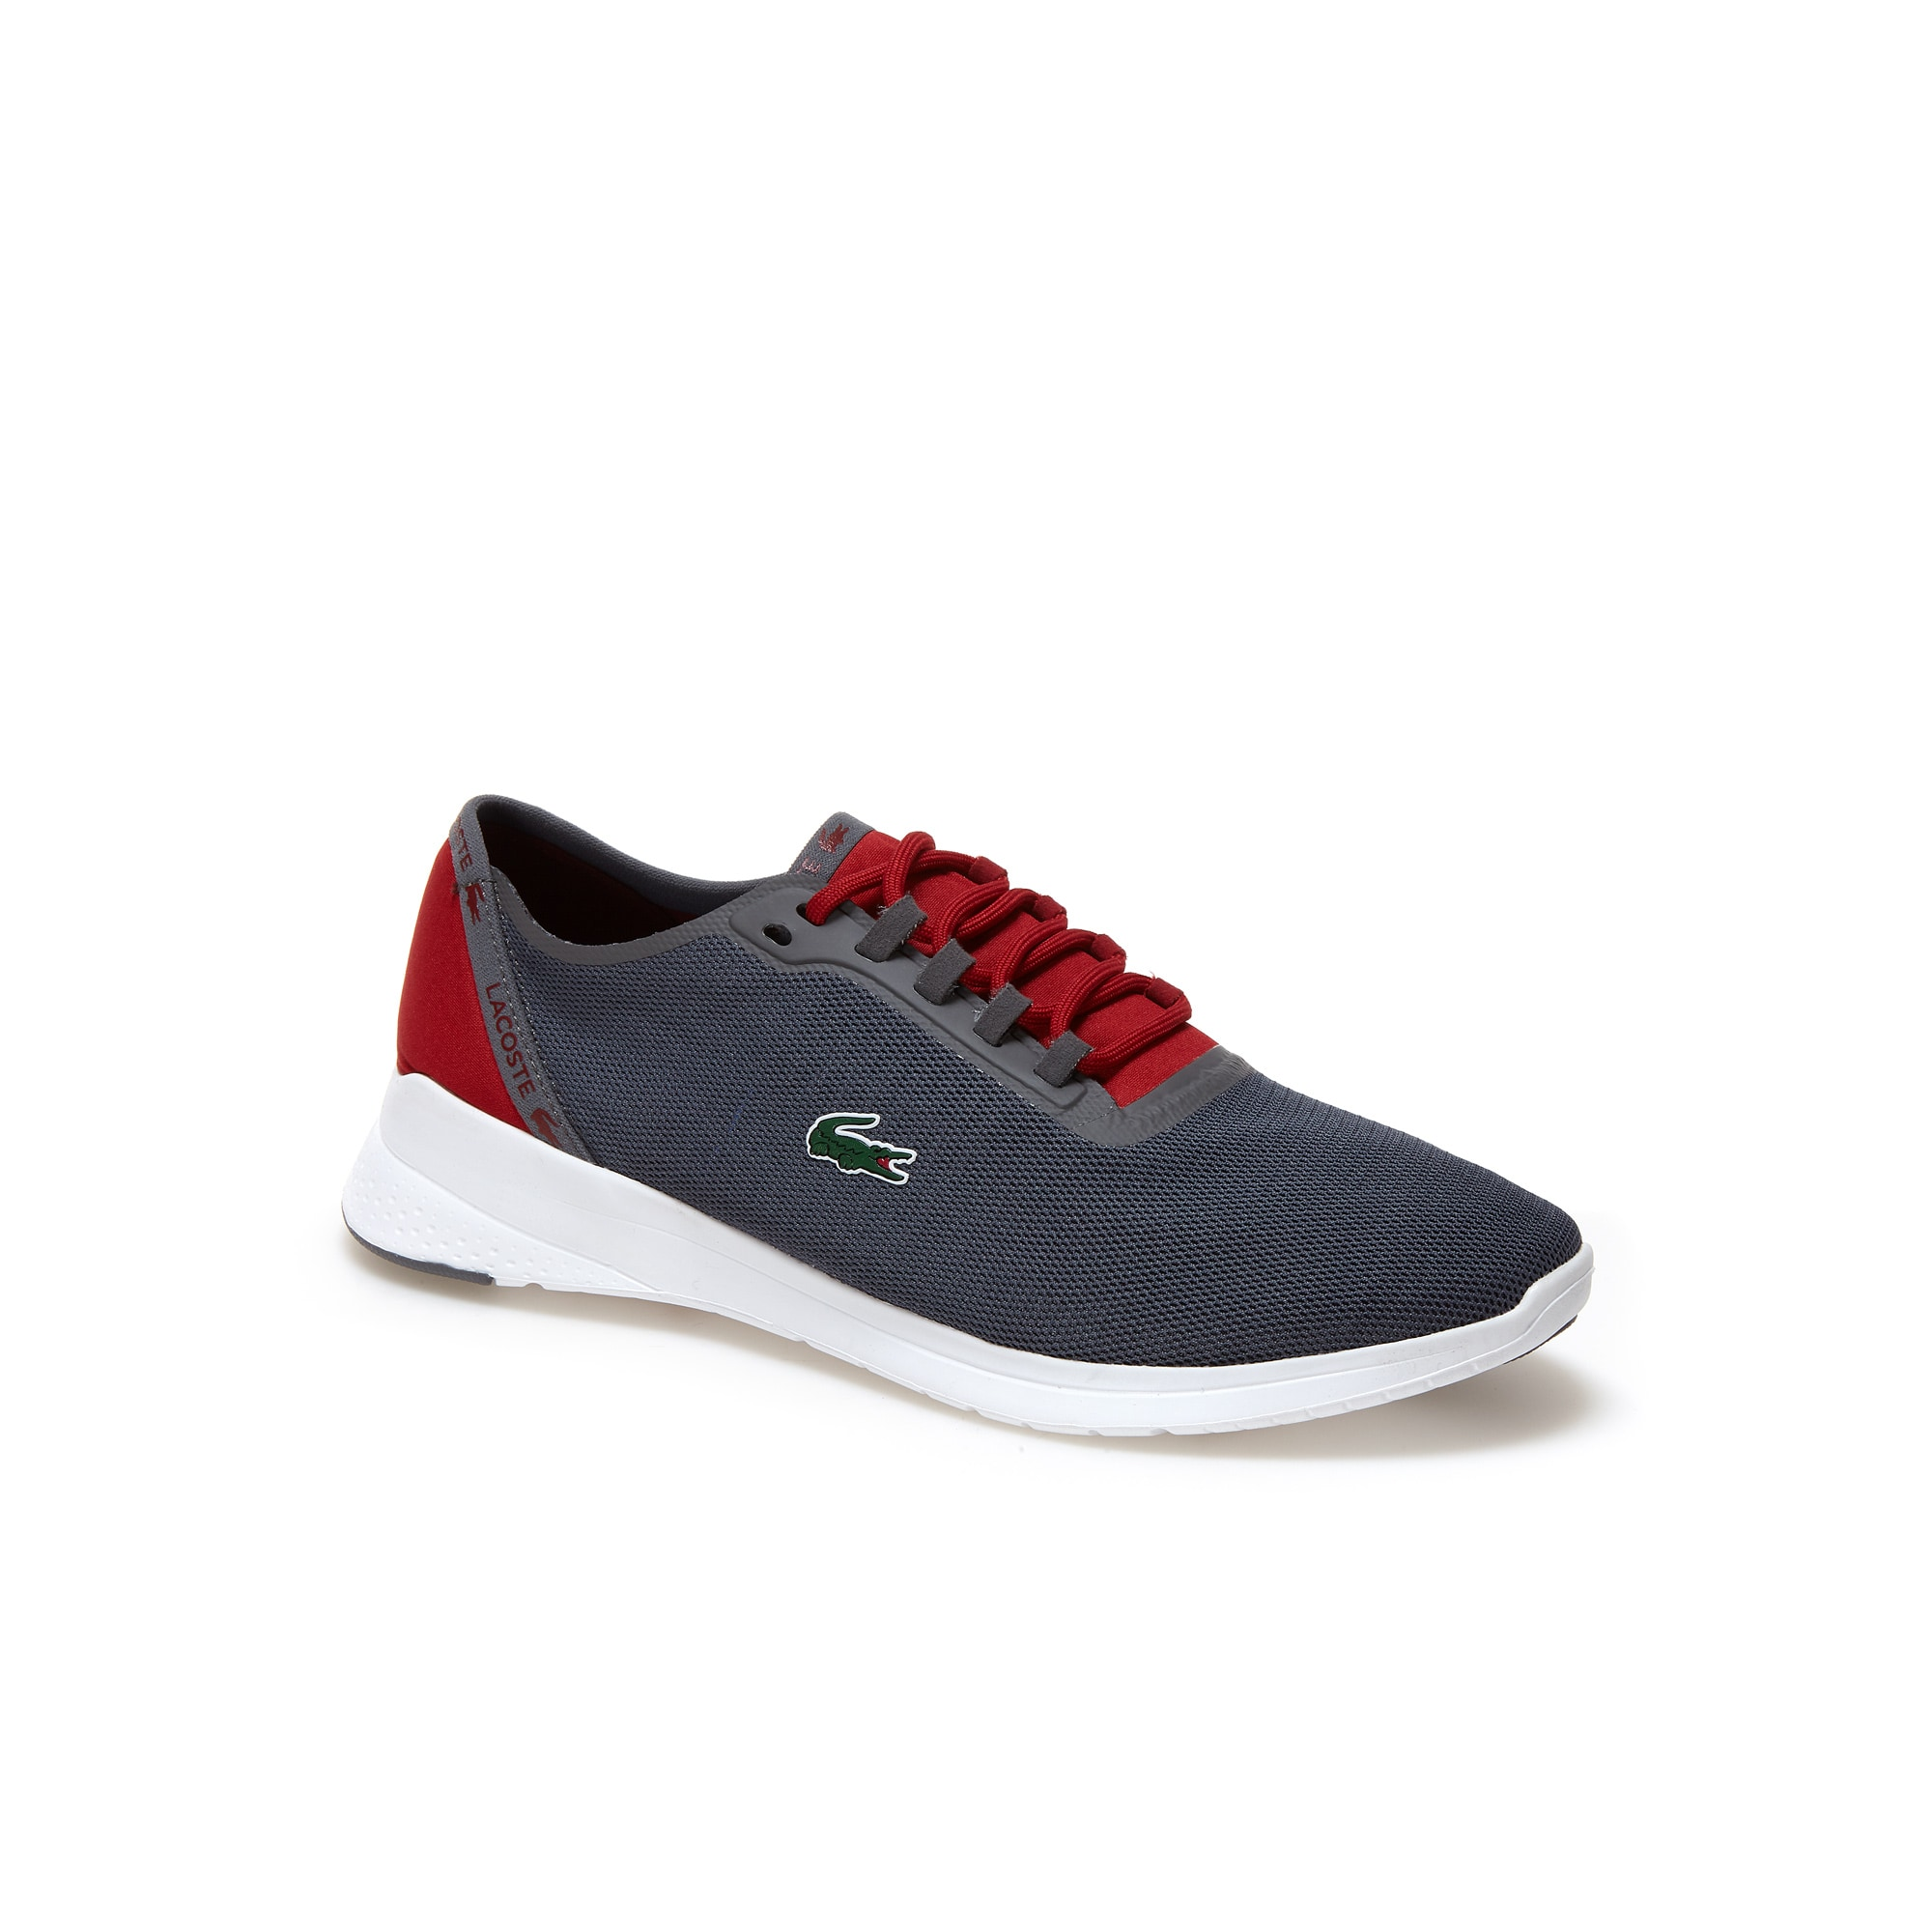 LT Fit herensneakers van textiel